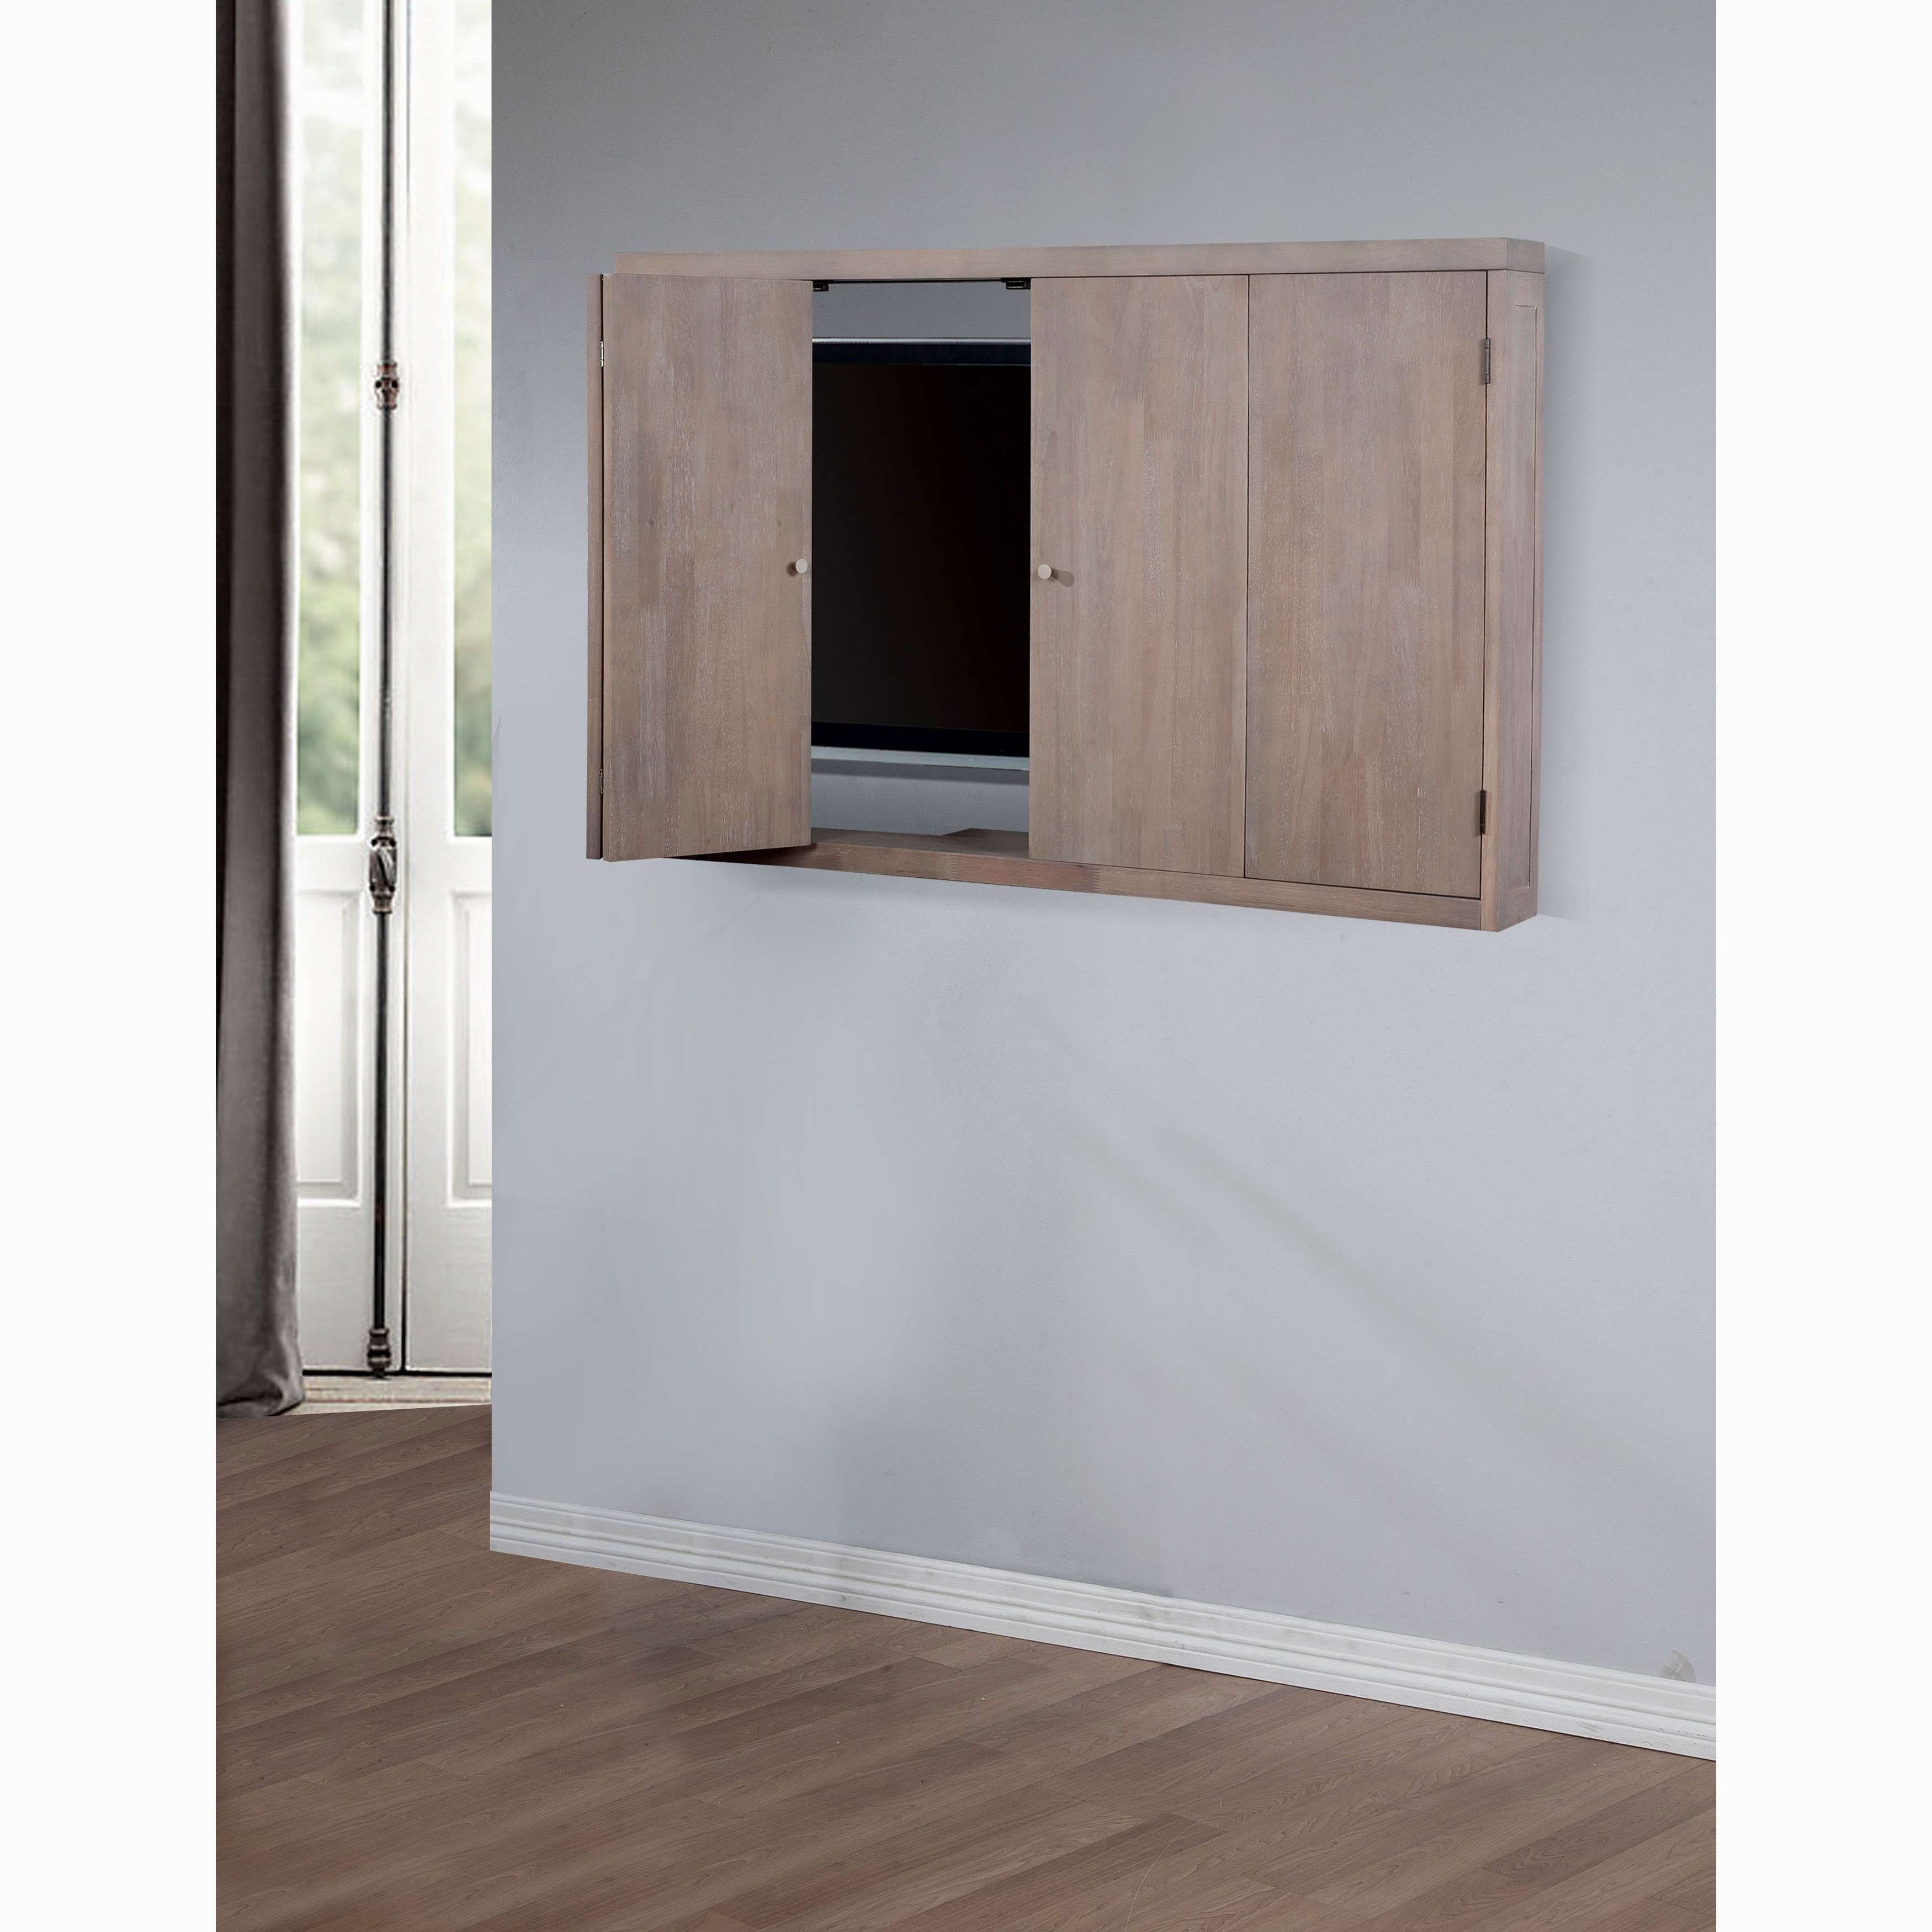 Hanging Tv Cabinet With Doors Choice Image – Doors Design Ideas Regarding Wall Mounted Tv Cabinets With Doors (View 5 of 20)